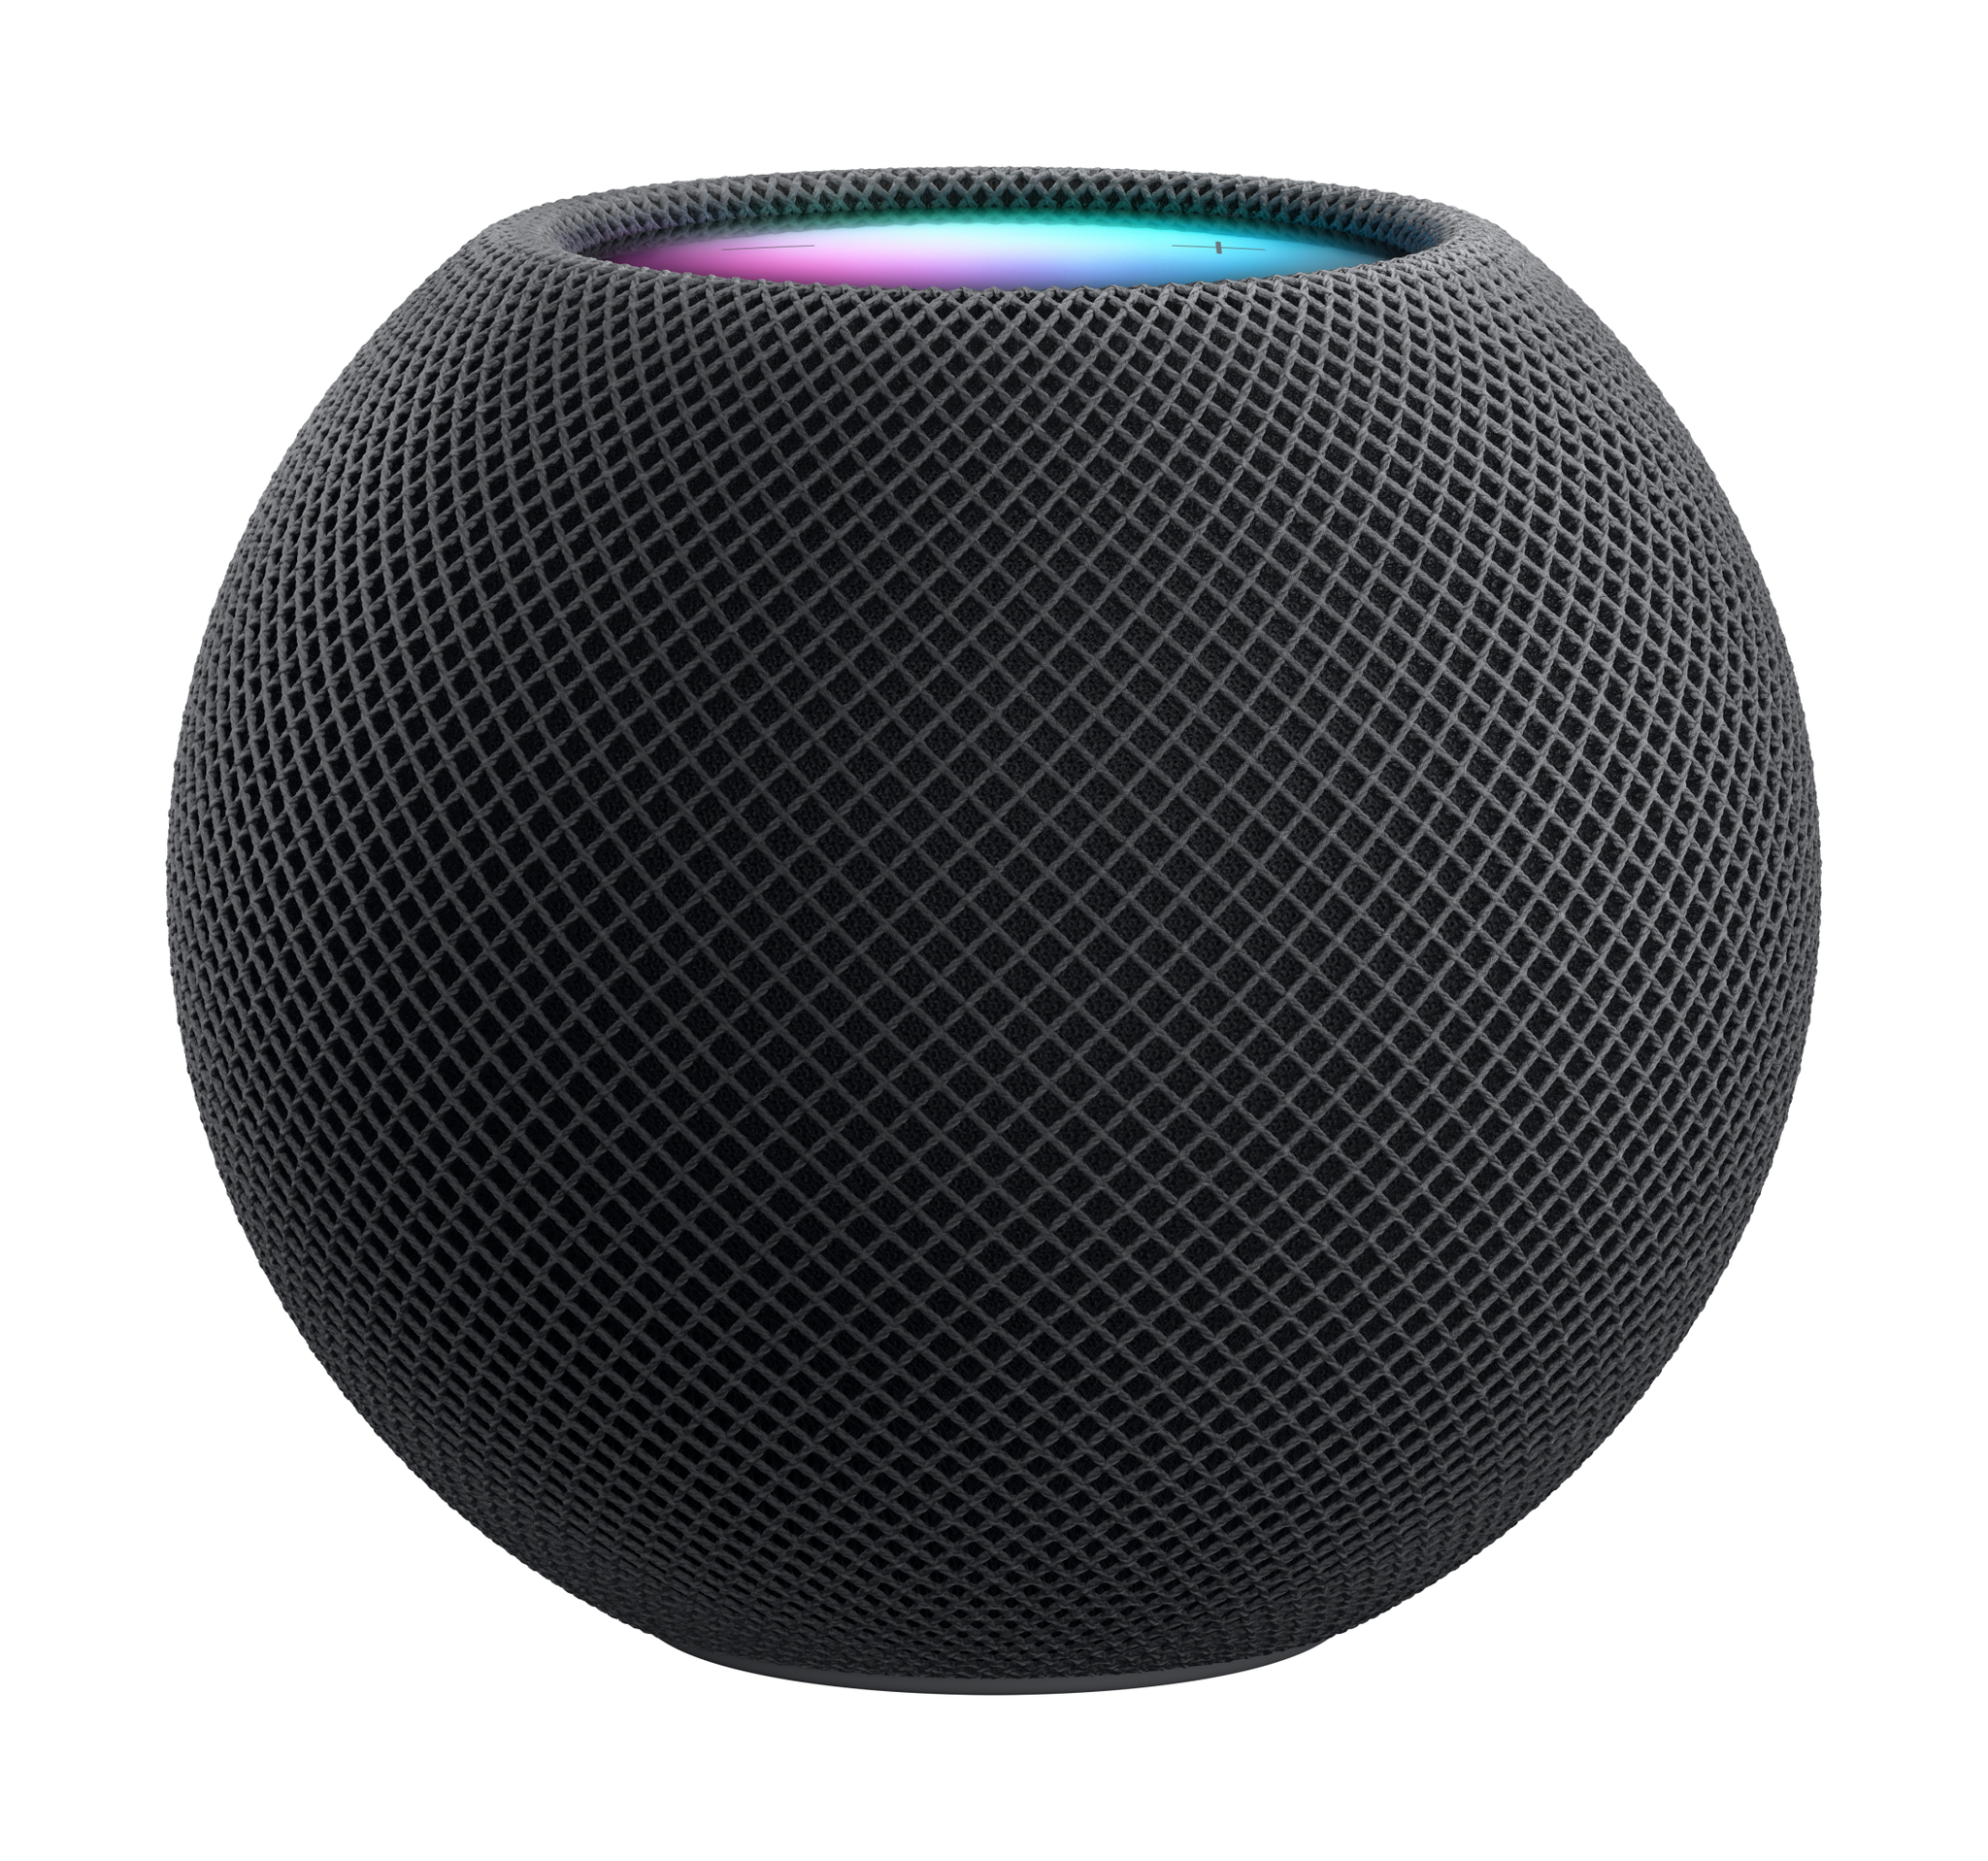 Apple HomePod mini - Space Gray (2020) at Small Dog Electronics